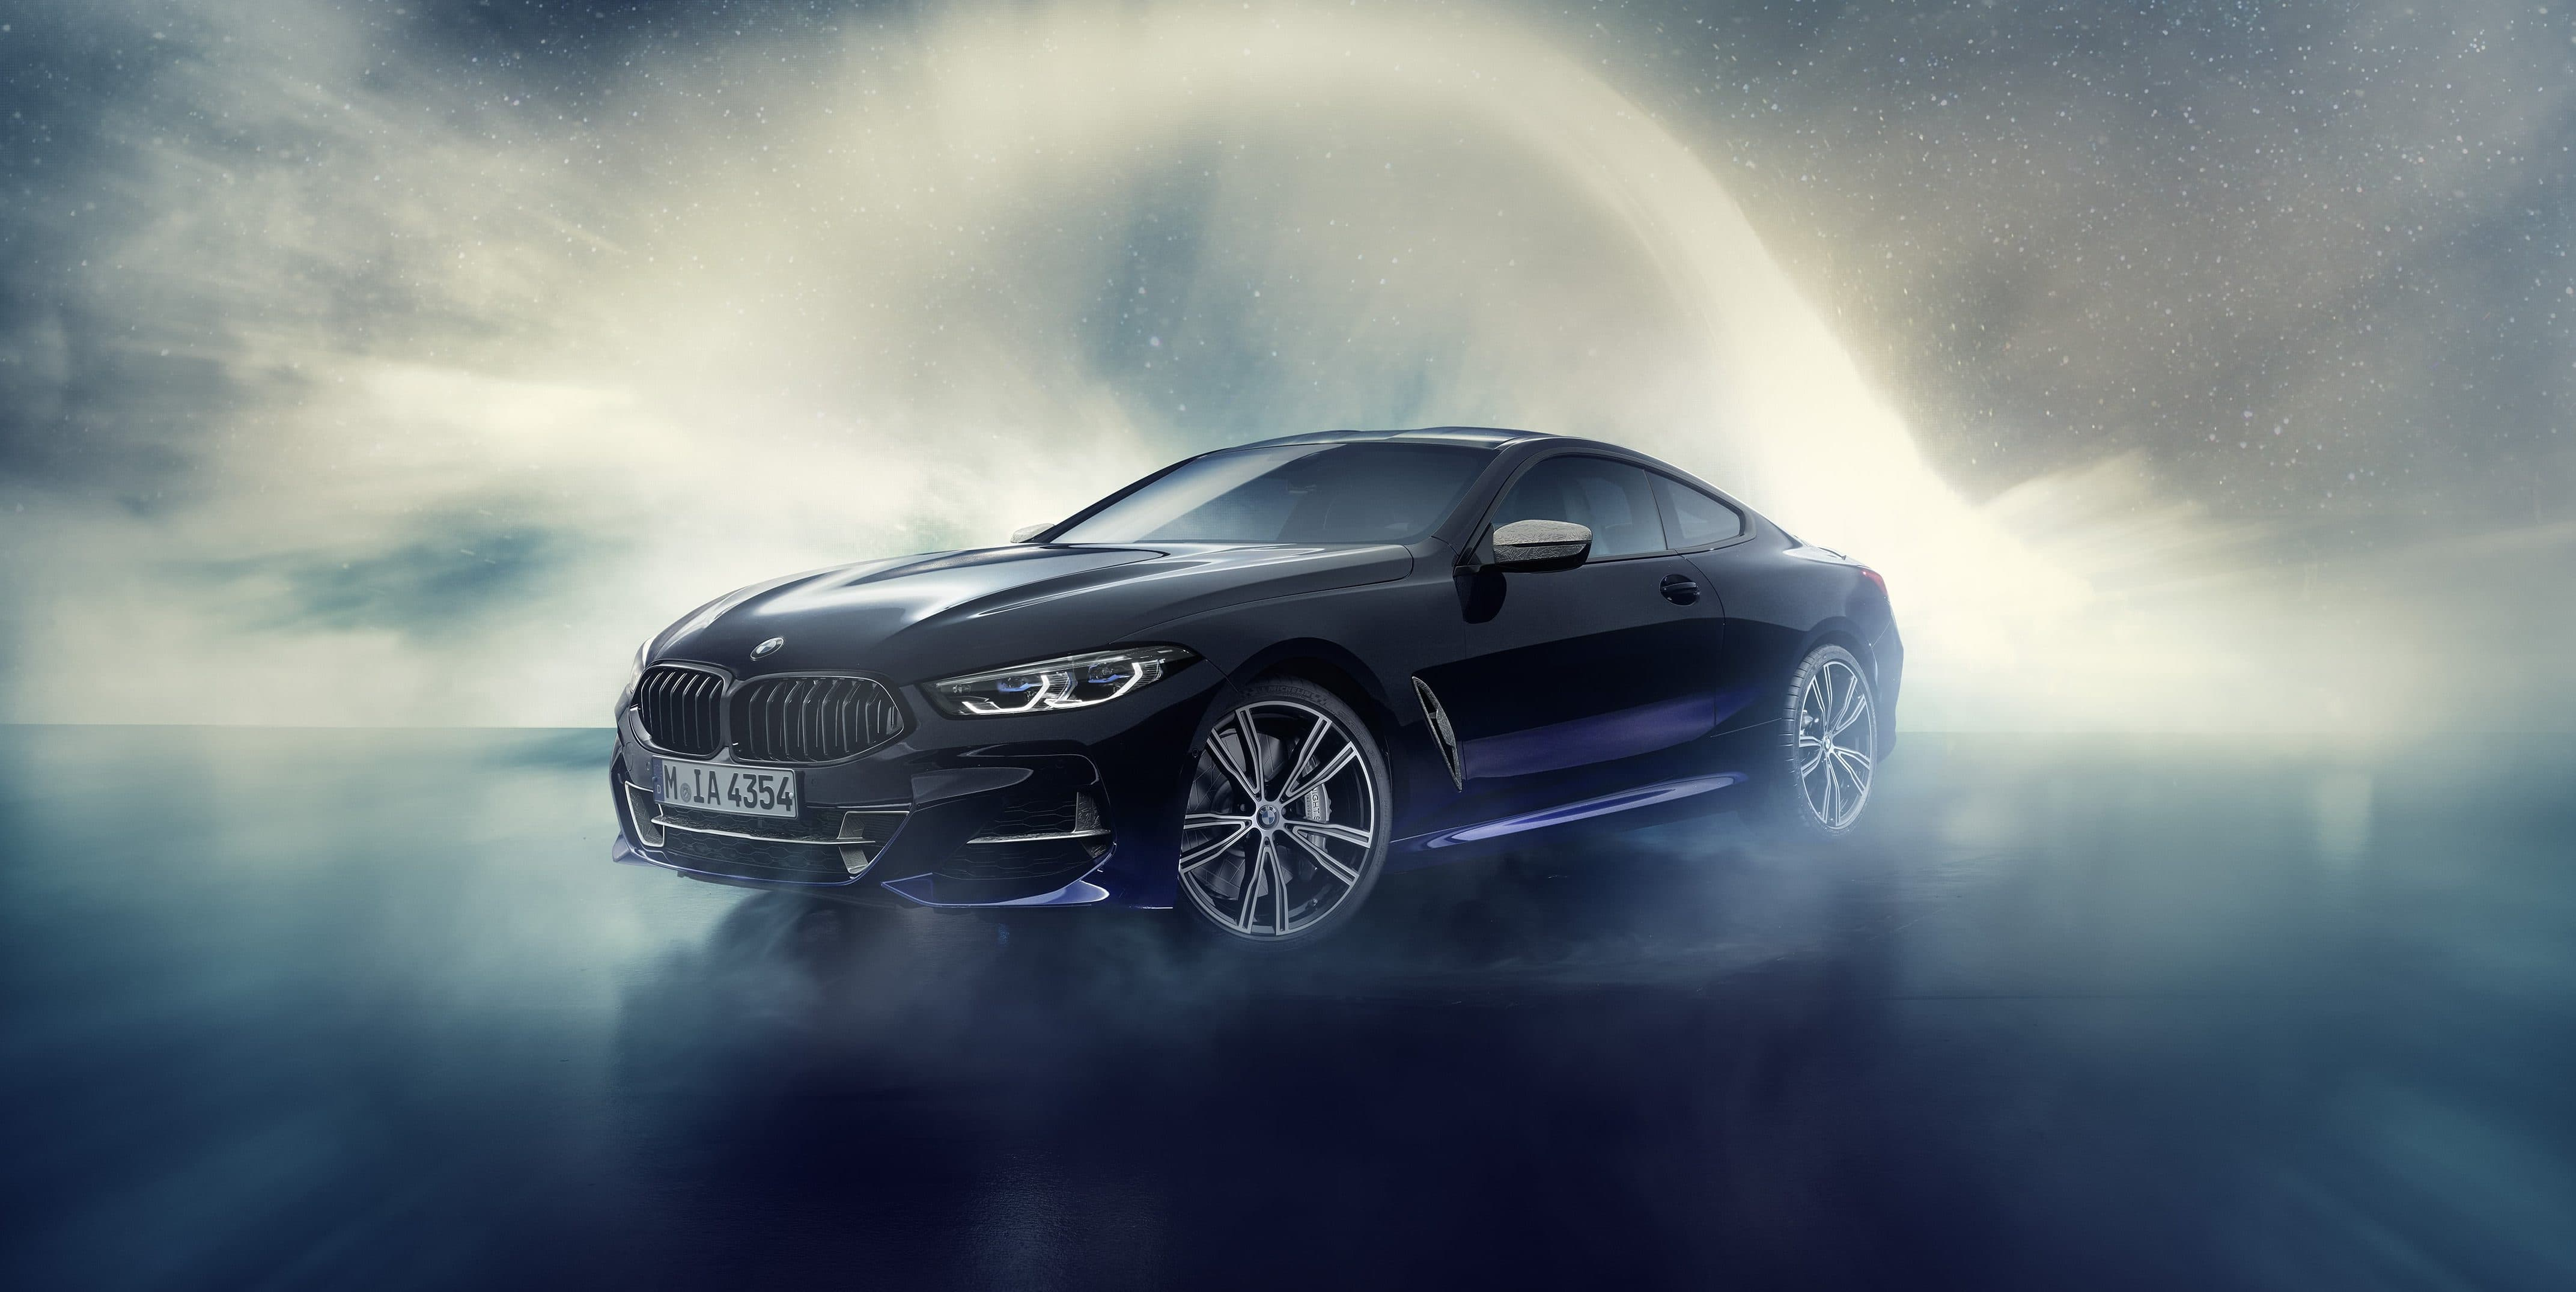 Cosmic Treatment: This BMW 8 Series Coupé has actual meteorite fragments on its dashboard